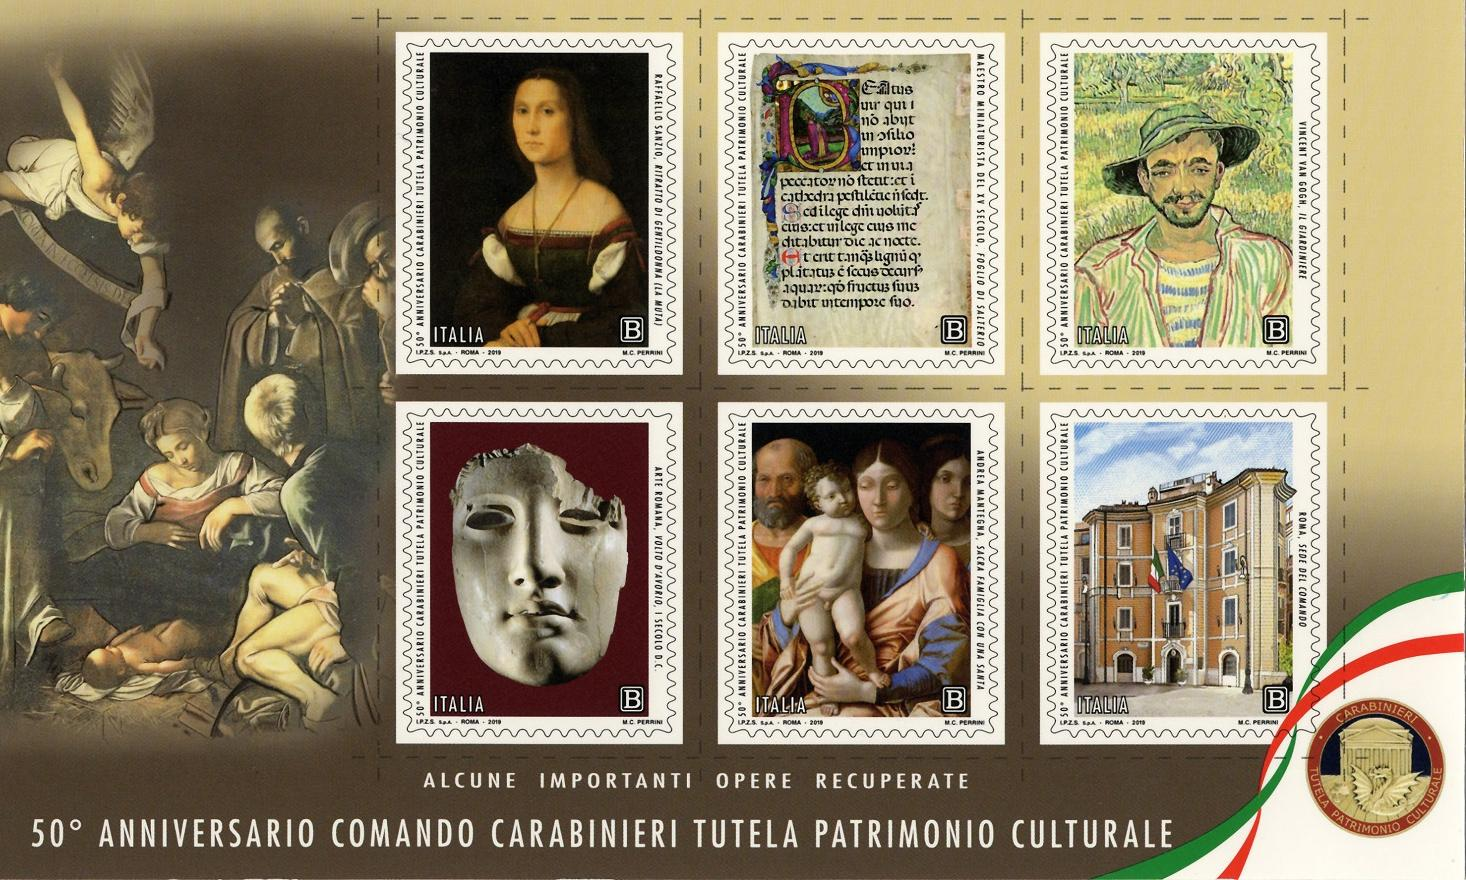 Italian stamps showcase artworks recovered by its 'monuments men'